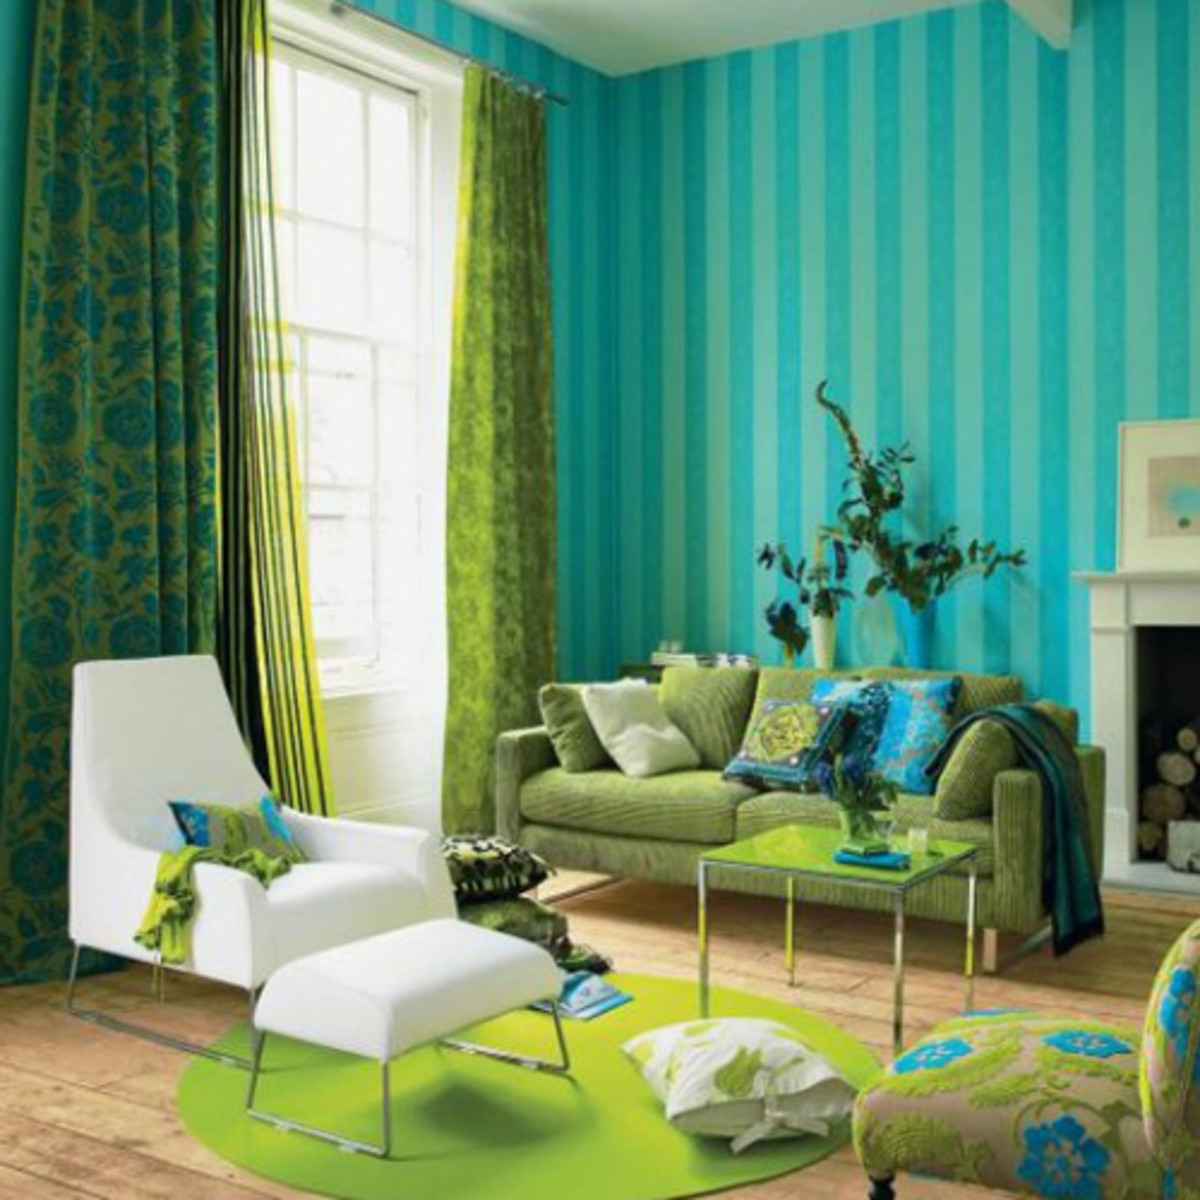 Turquoise and lime green living room interior design ideas for Lime green home decorations